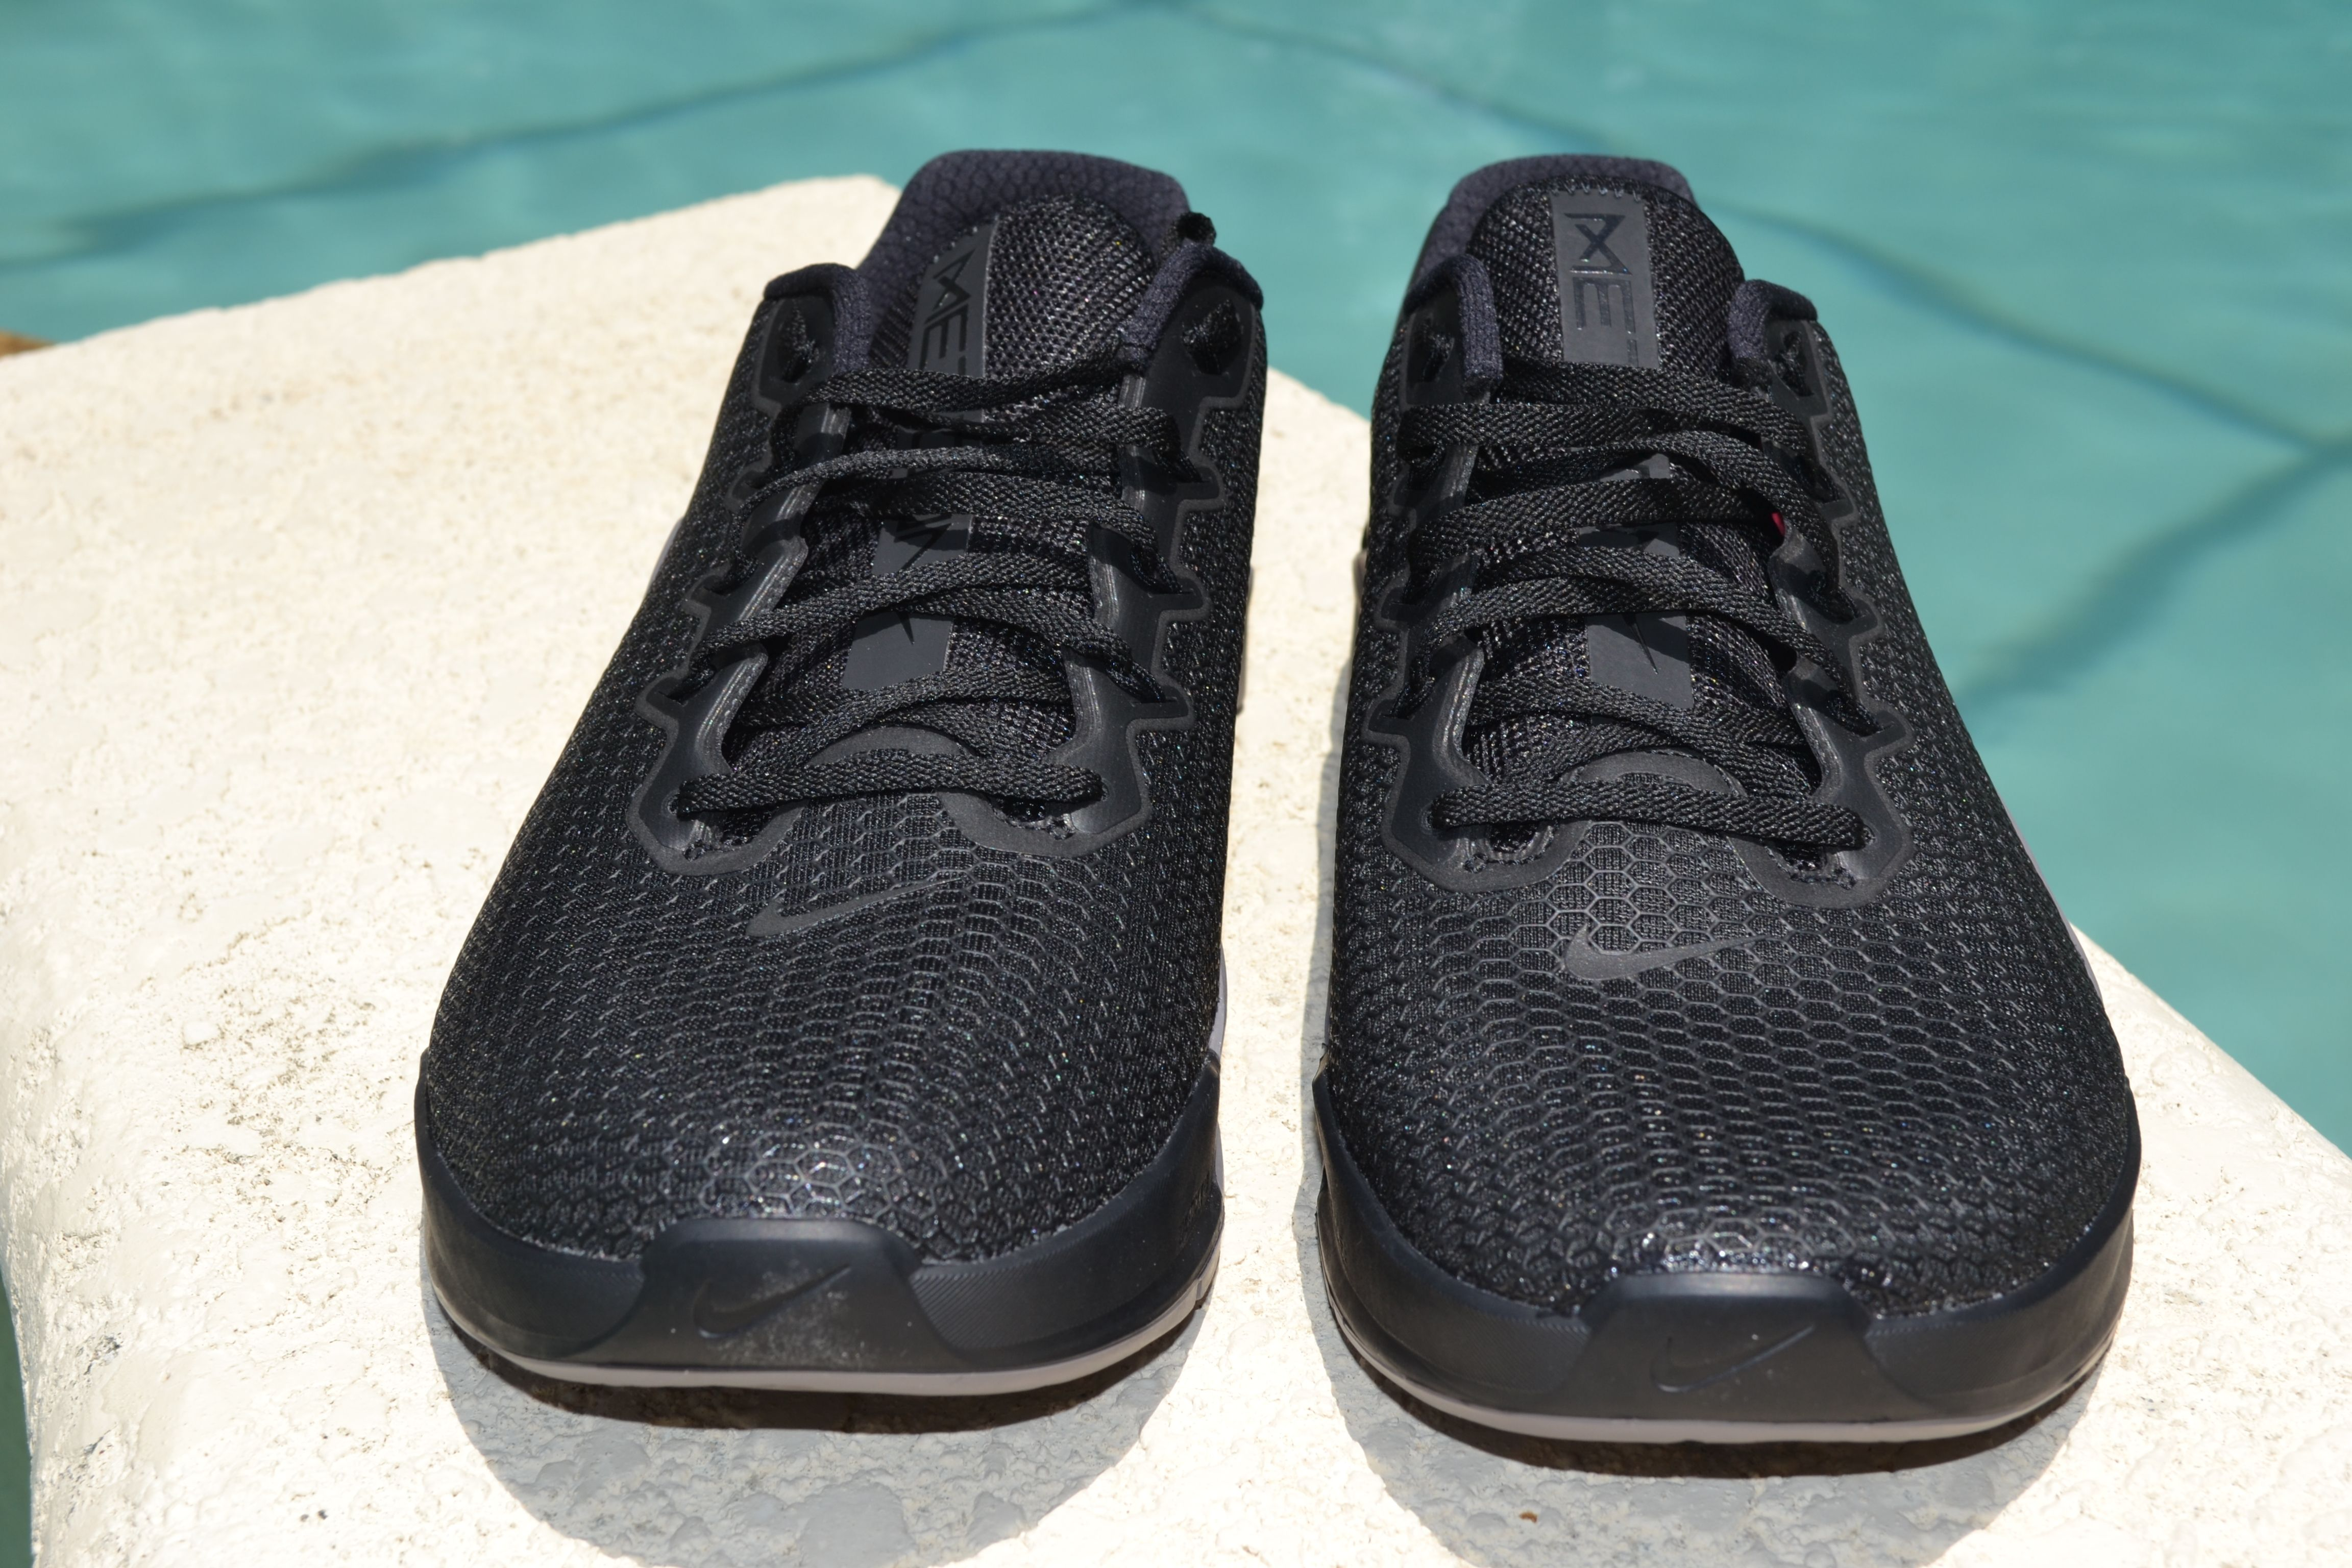 Pin by Fit At Midlife on Nike Metcon 5 Cross Training Shoe